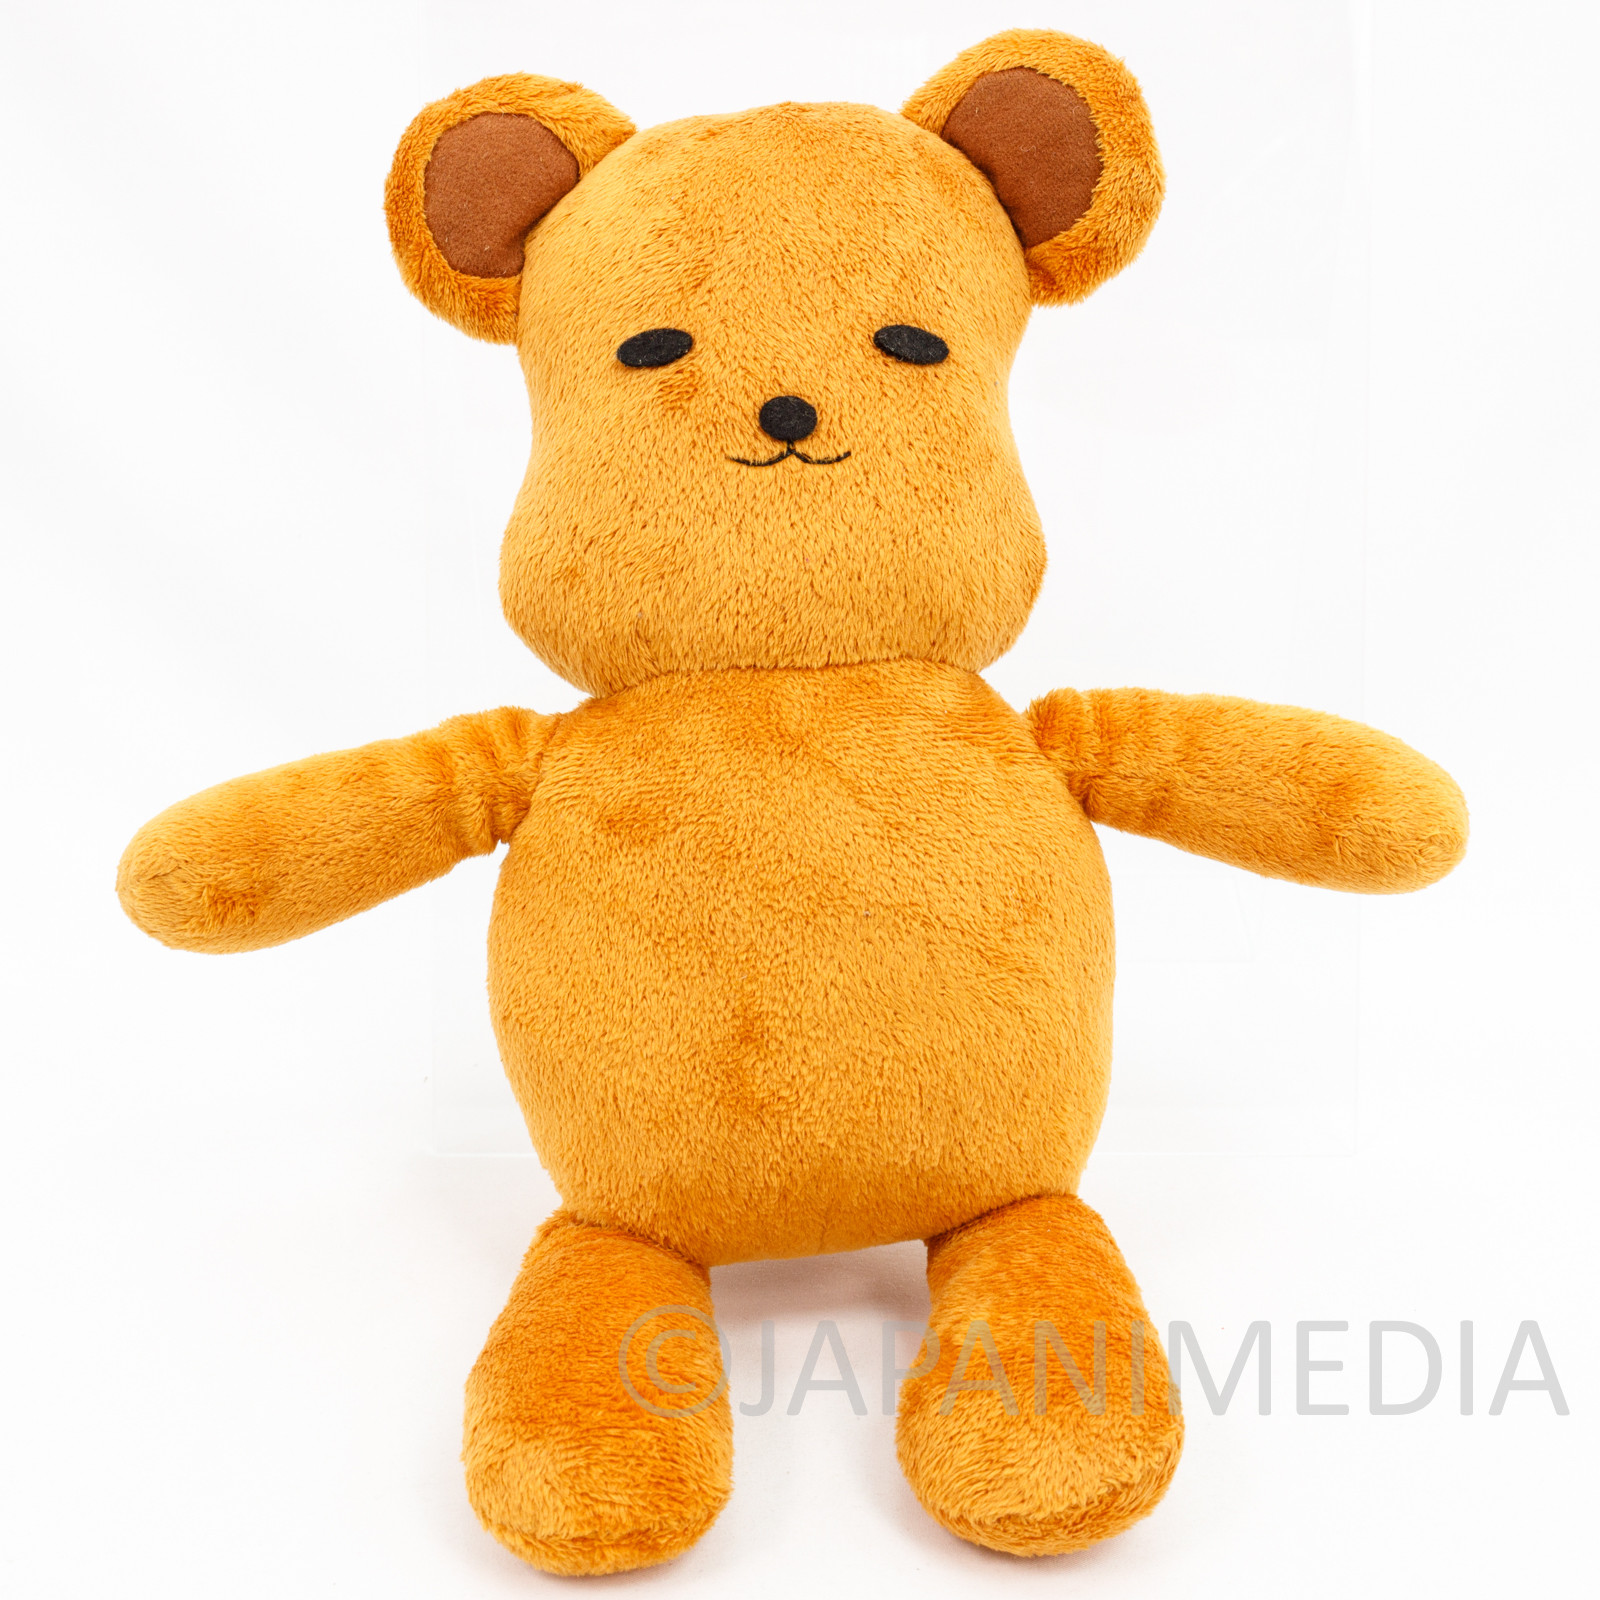 "Minamike Fujioka Bear Plush Doll 12"" JAPAN MANGA ANIME"